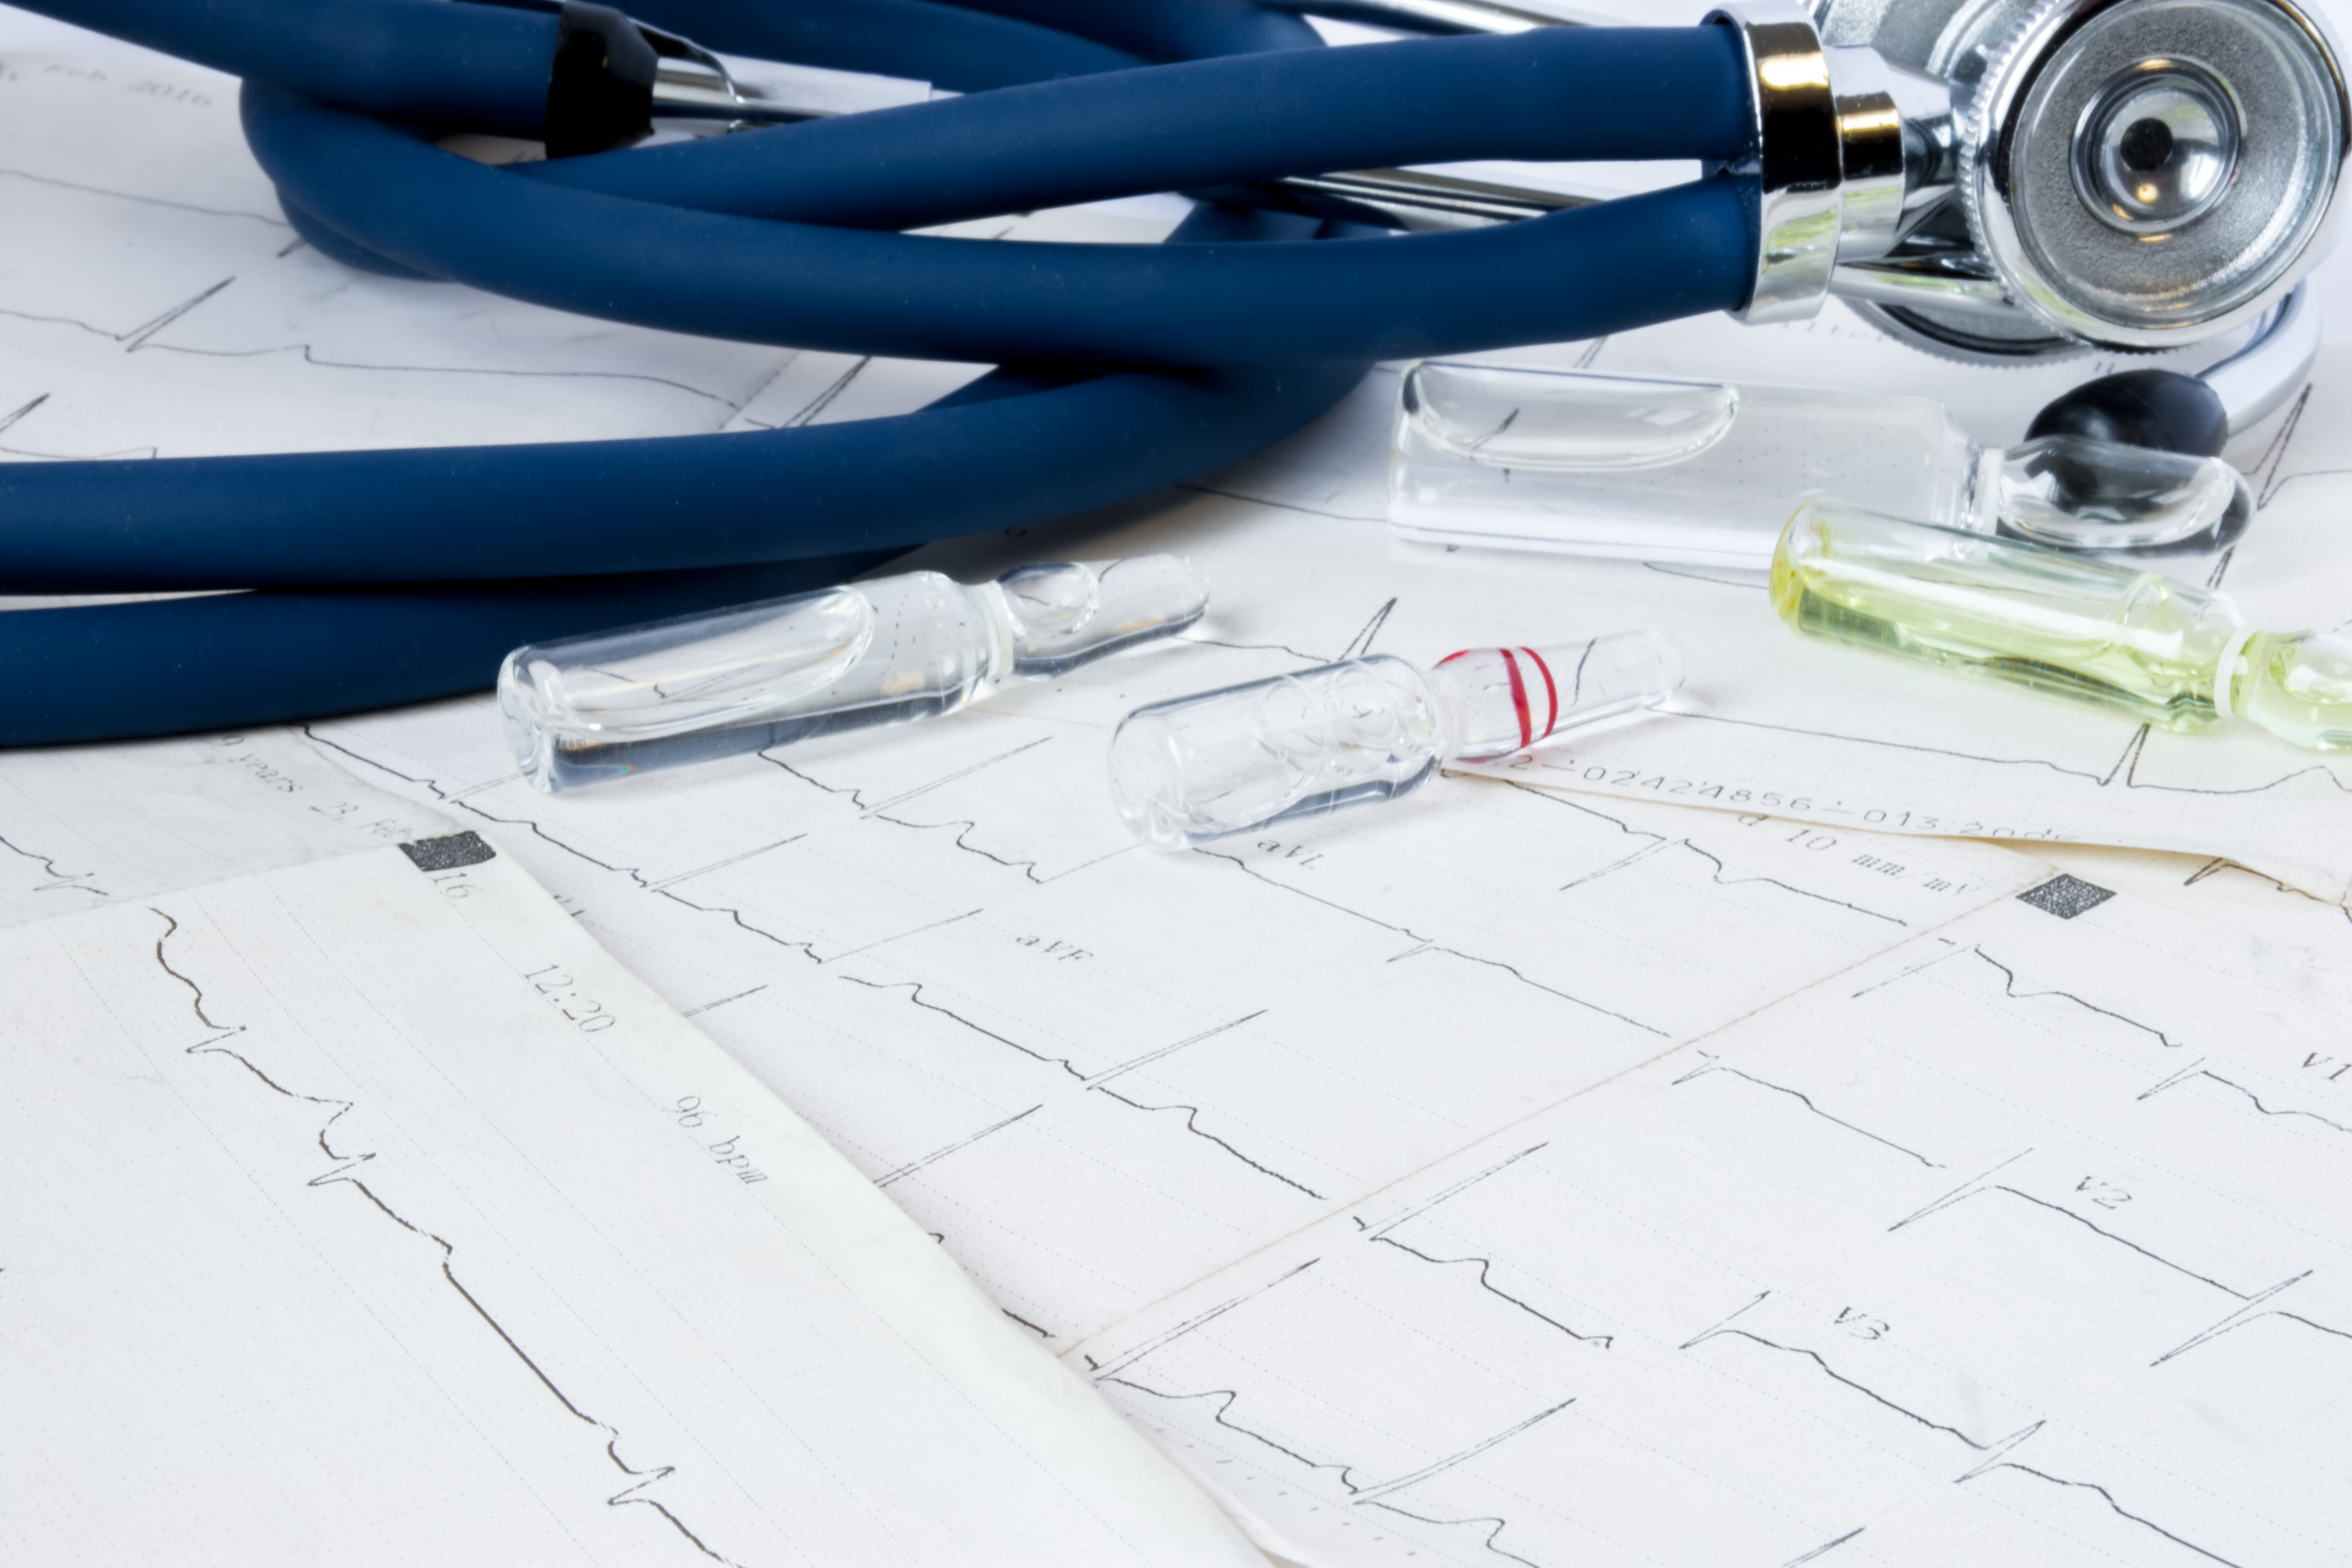 Concept photo treatment of cardiovascular disease arrhythmias cardiac conduction system, recovery and relief of life-threatening cardiovascular system. On ECG strips are vials medicine and stethoscope